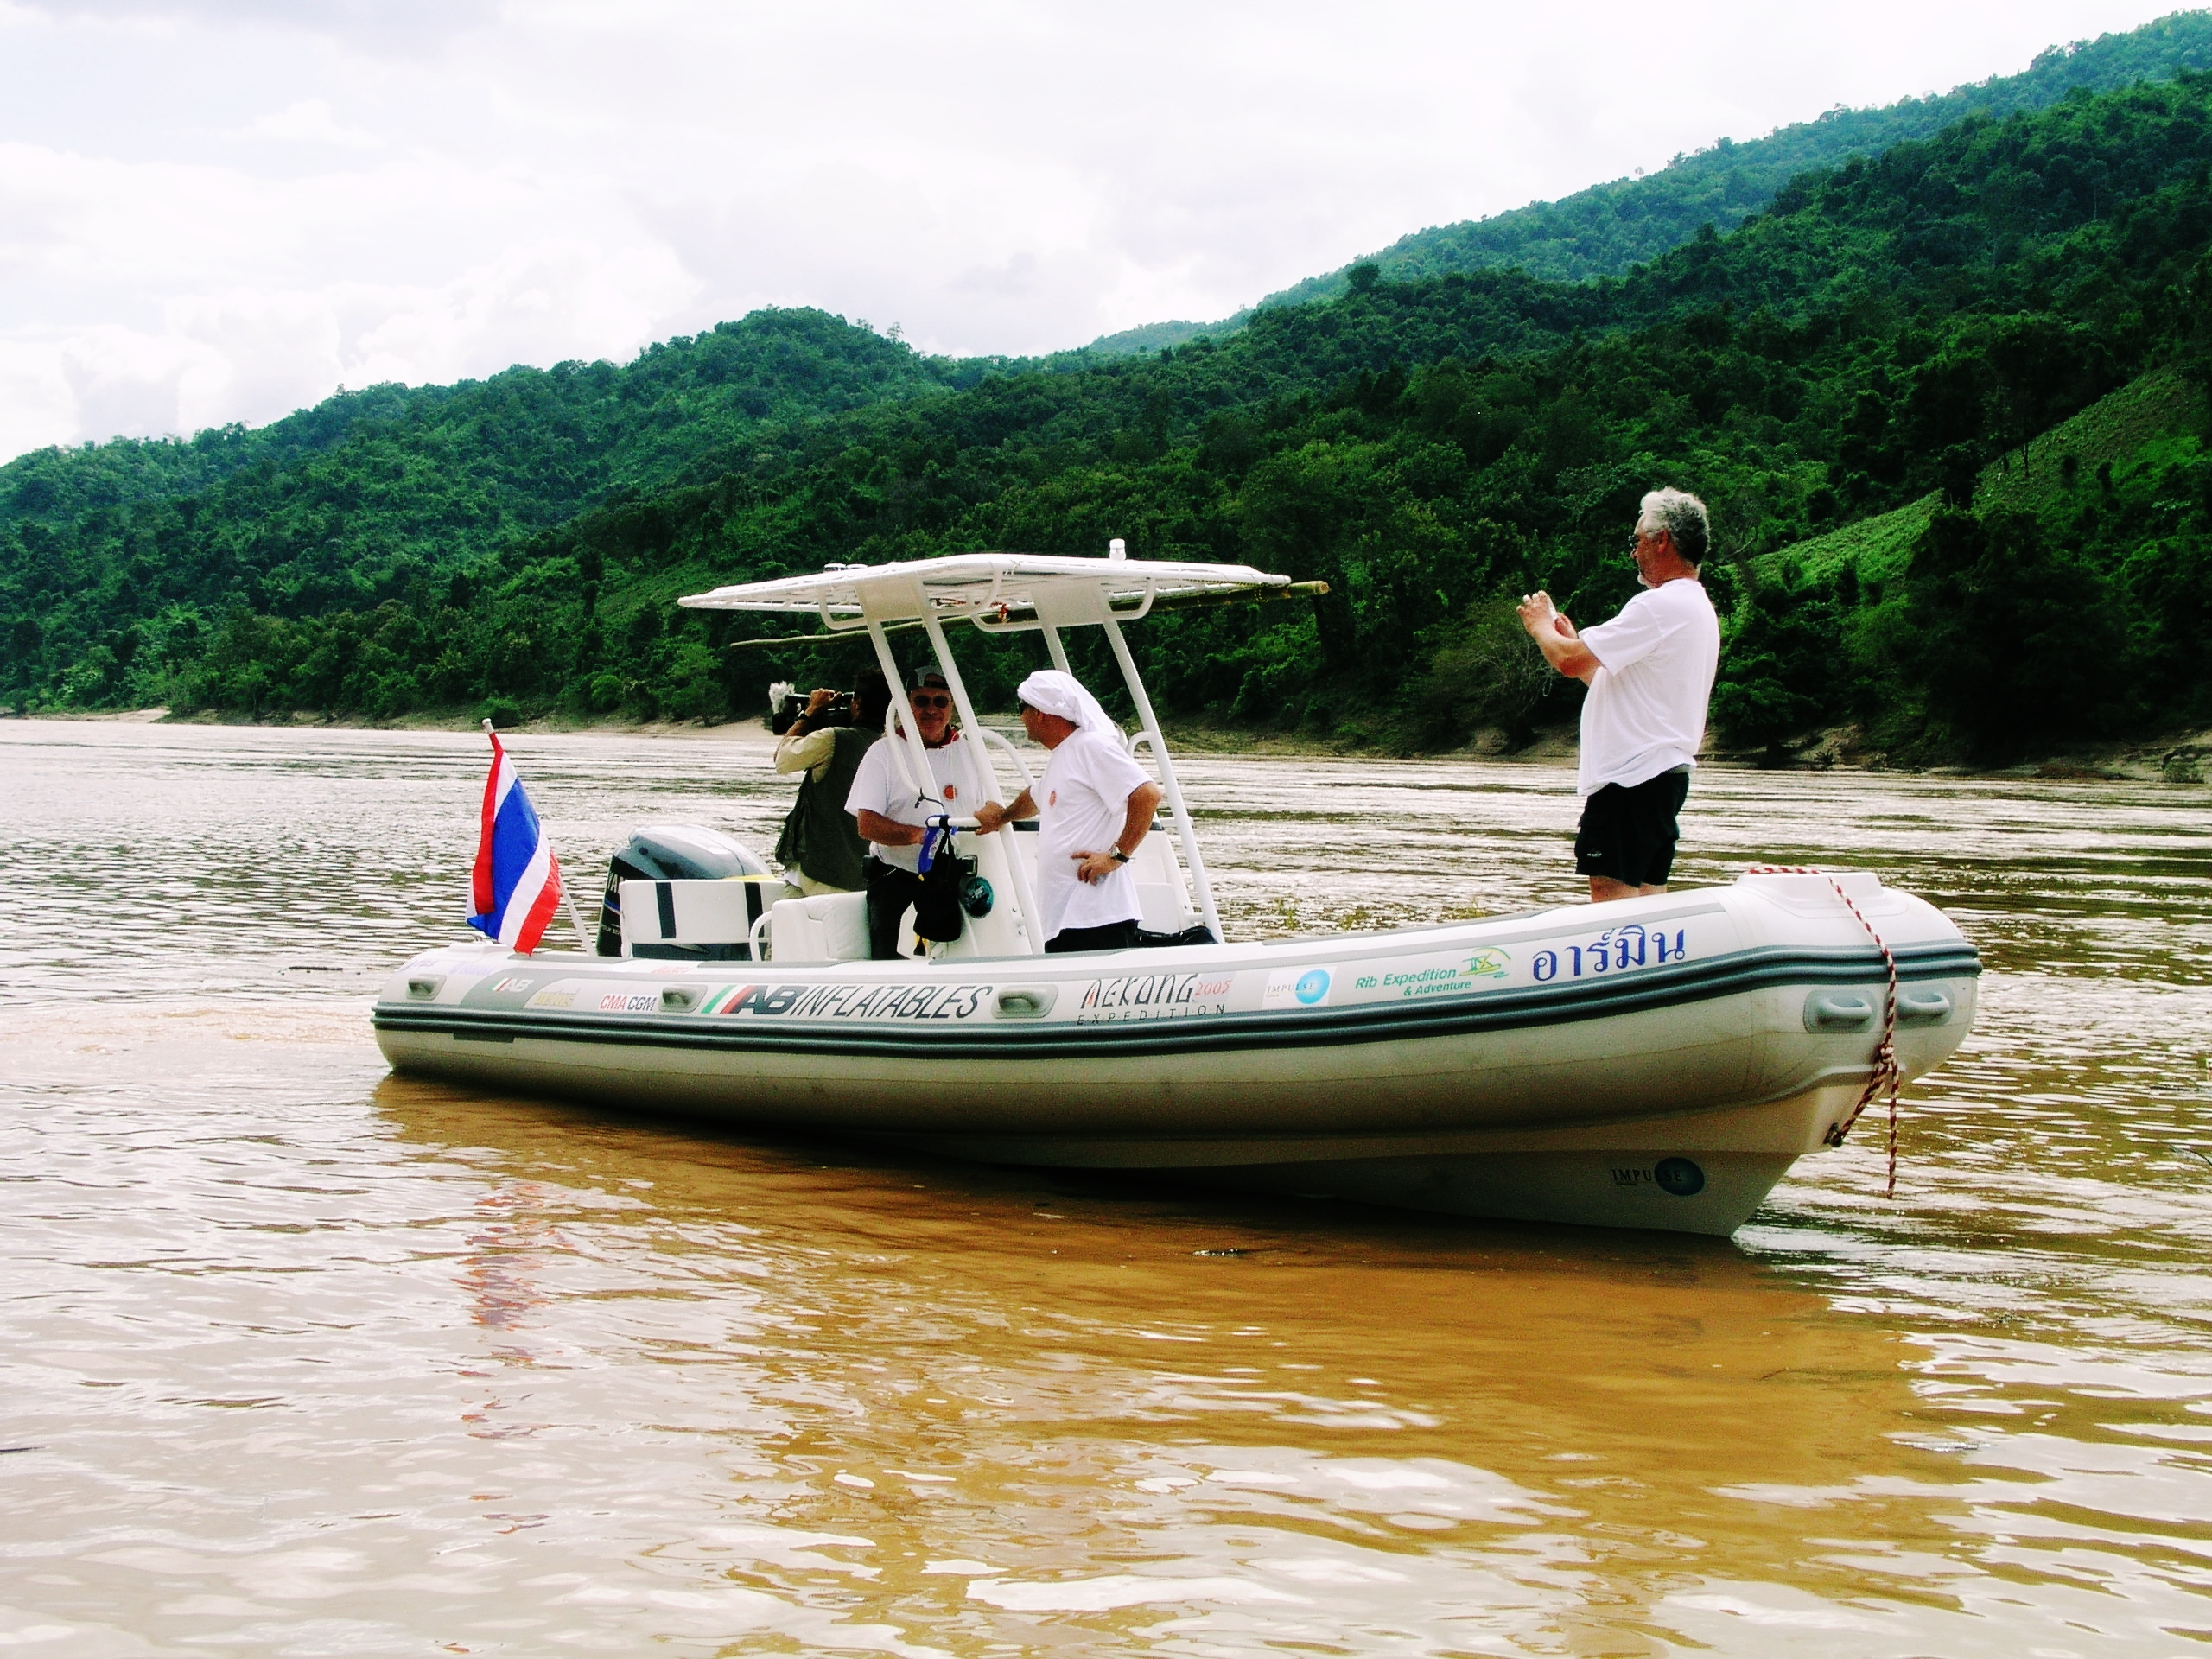 EXPENDITION MEKONG CRUISES INTO THE HISTORY BOOKS